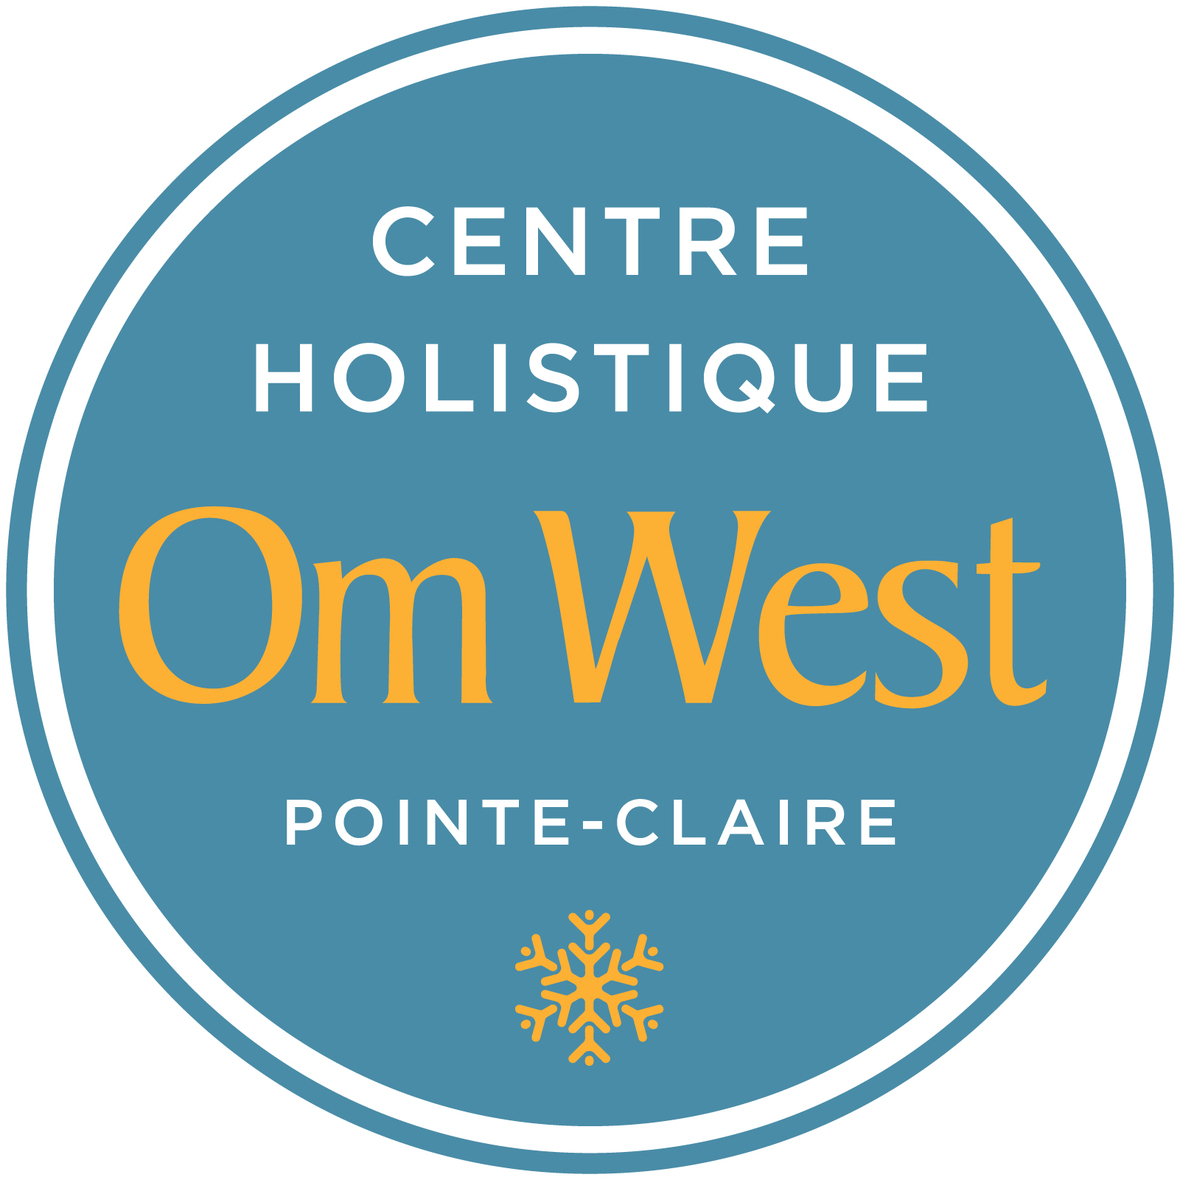 Om West Official logo January